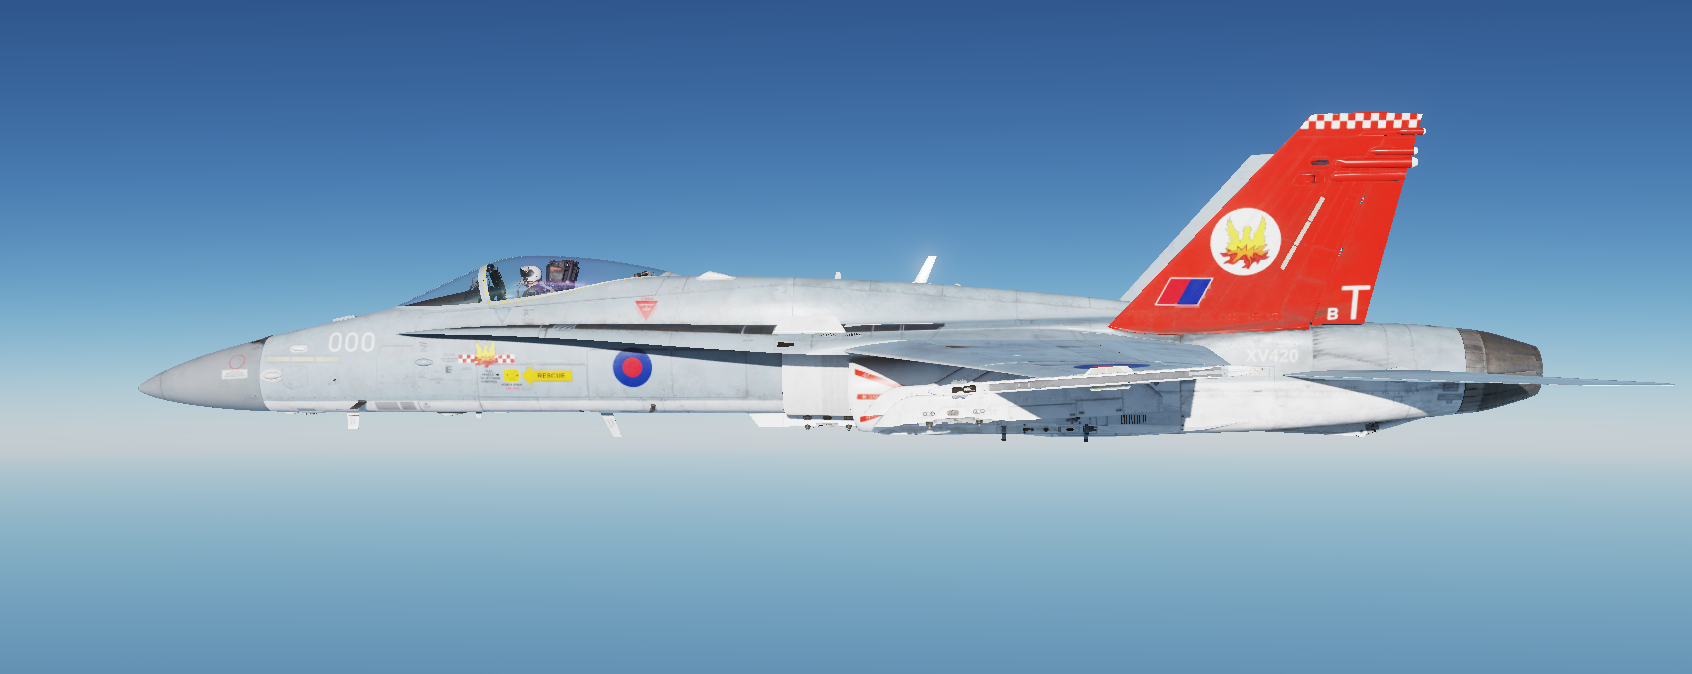 Royal Air Force Phantom inspired livery from 56 Squadron (1992)